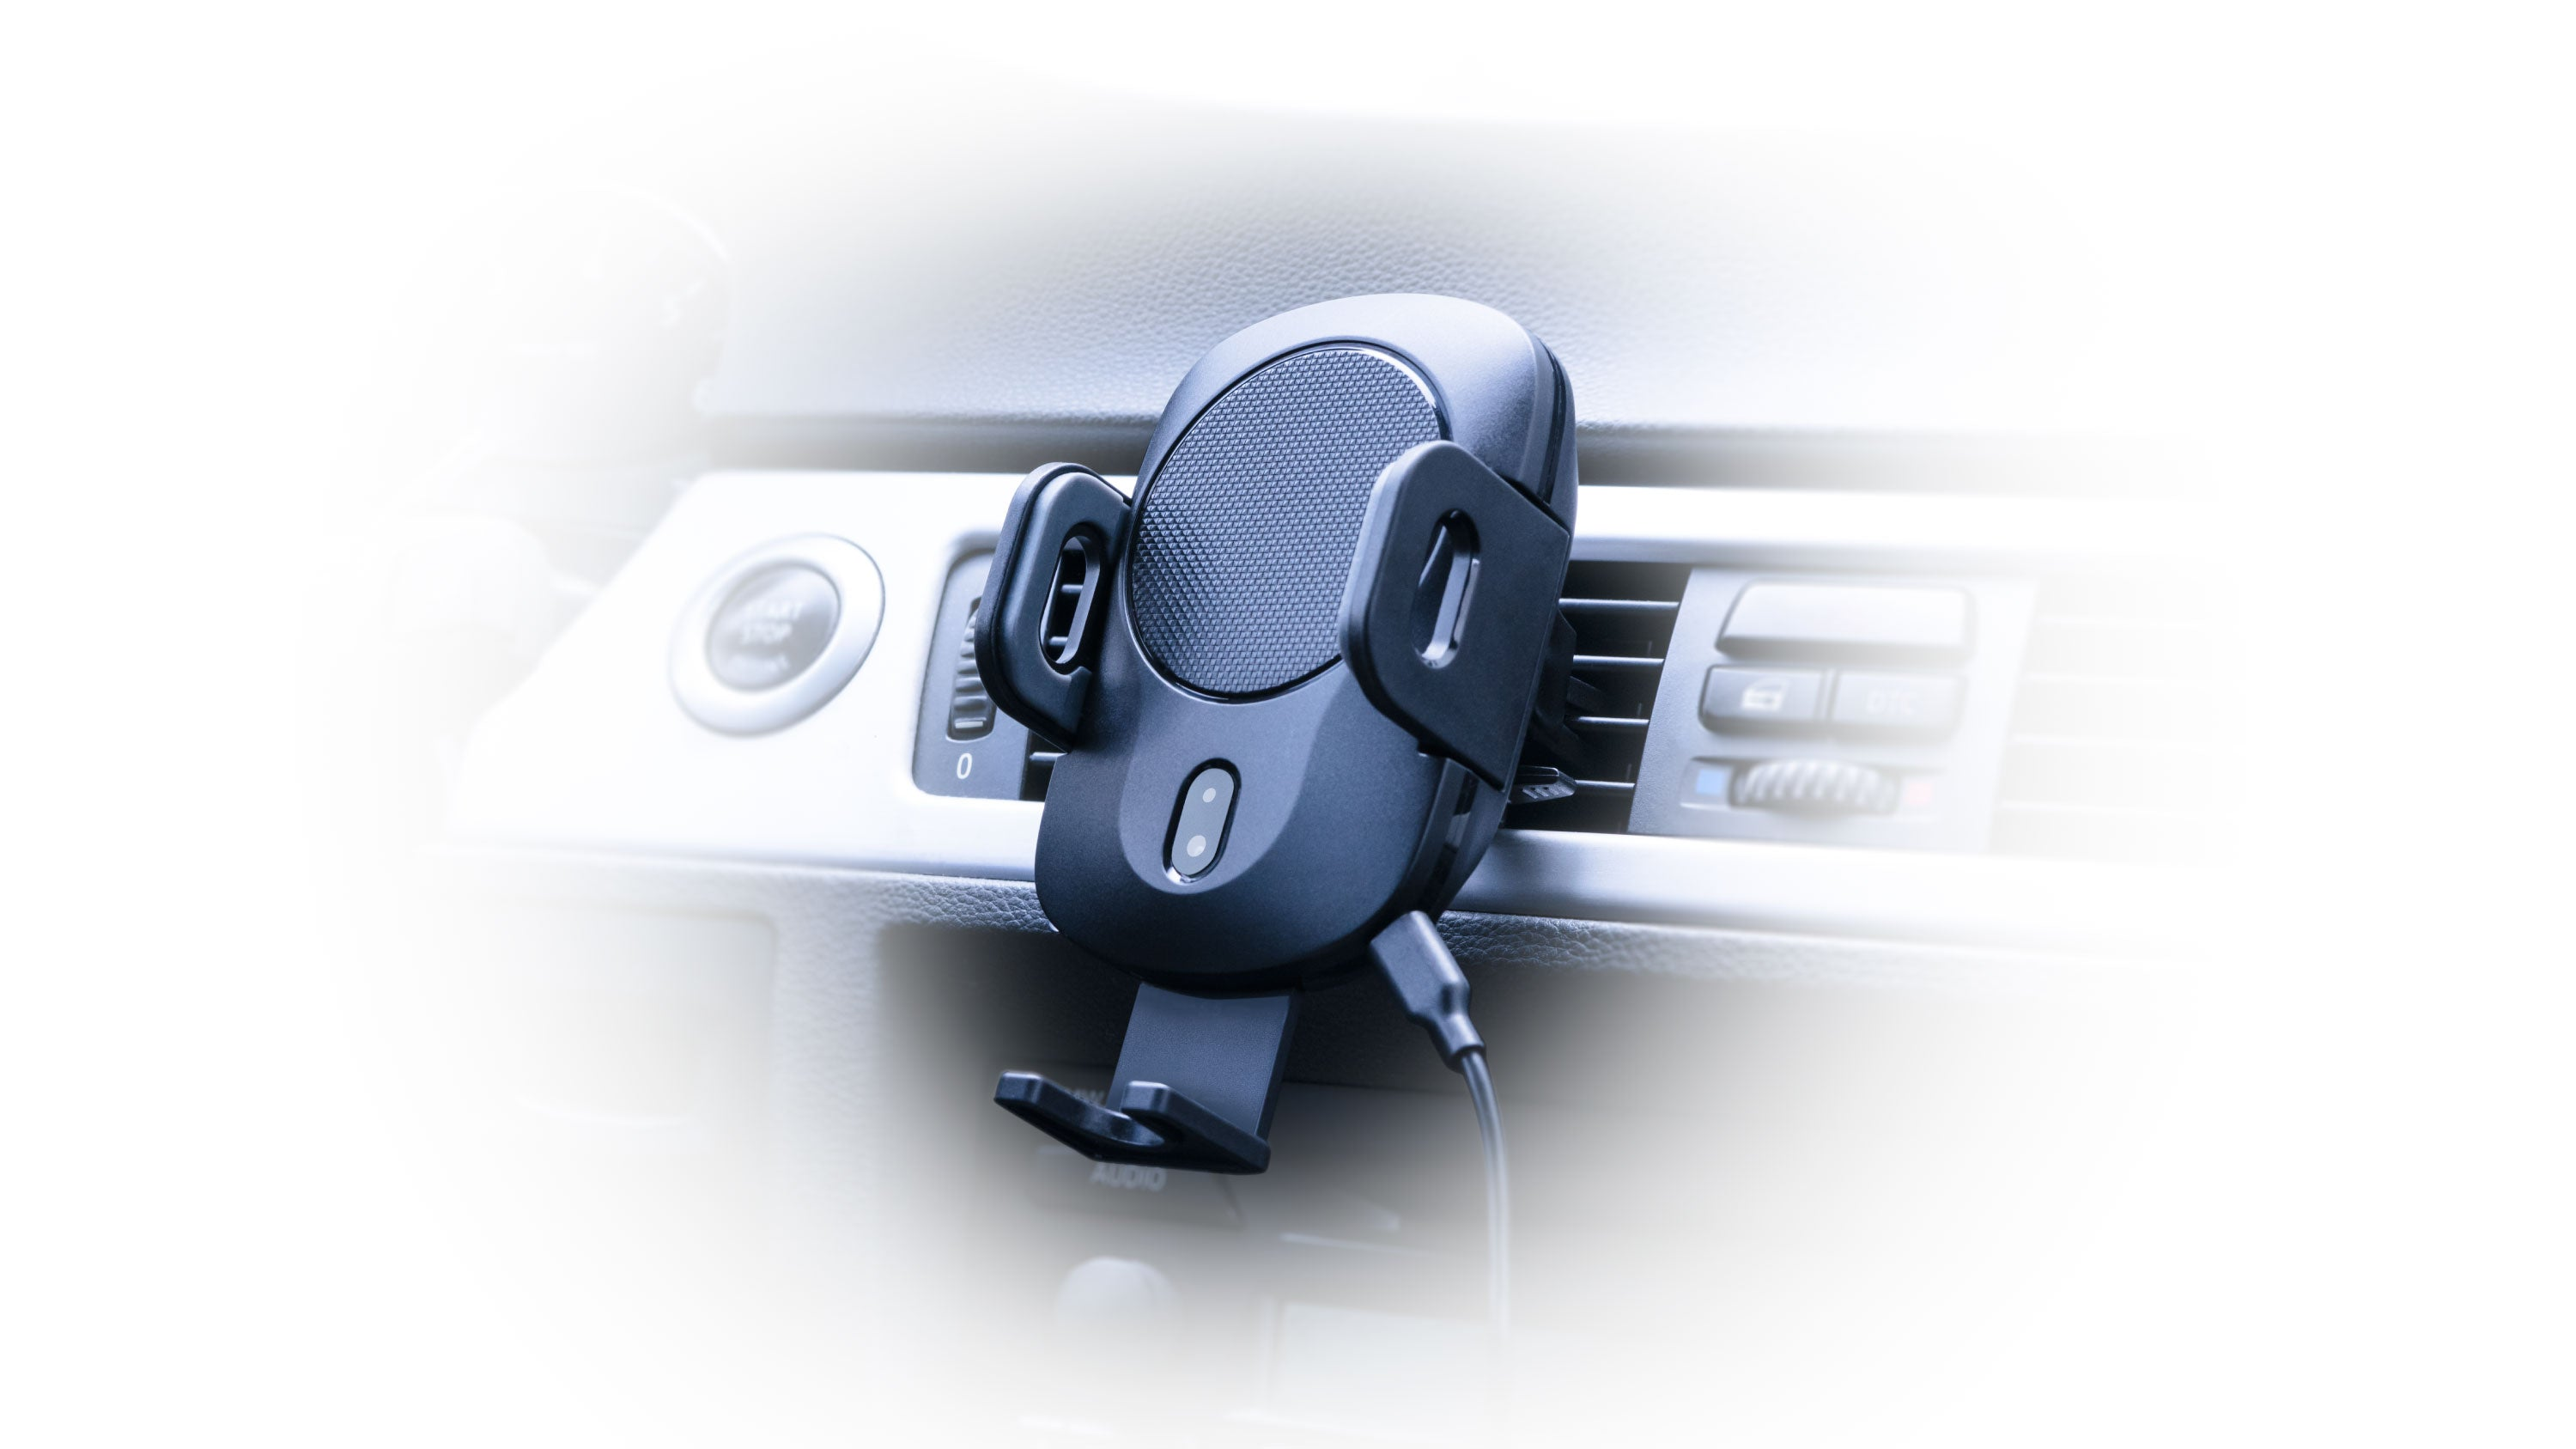 Energy Core Go Wireless Car Charger & Automatic Dock for iPhone, Samsung & More